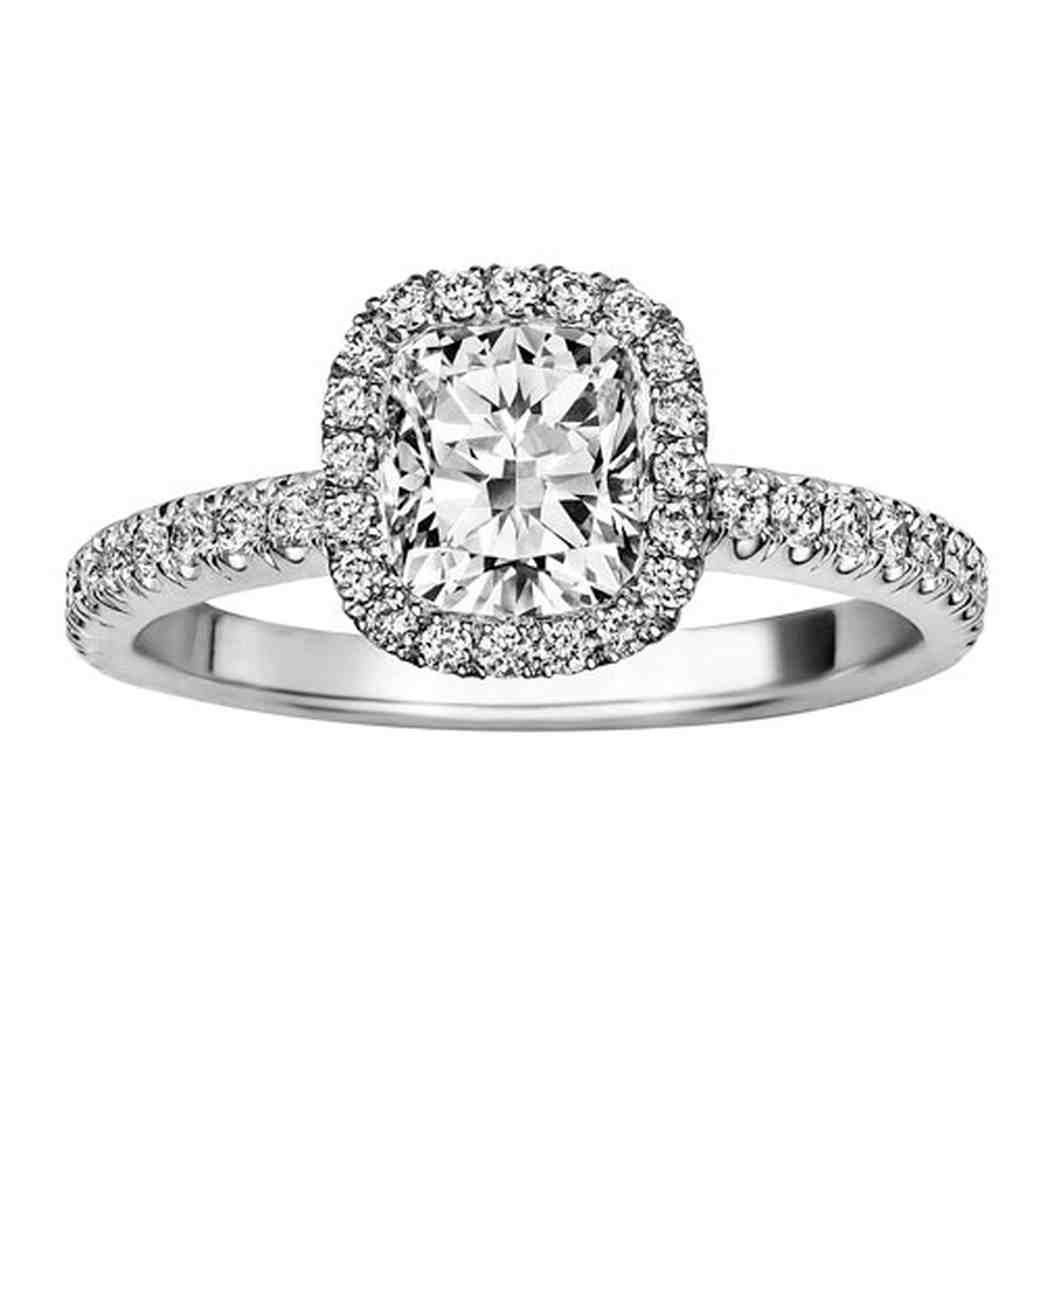 eternity pave tw p shop for ring platinum ct band bands wedding pav in cost diamond